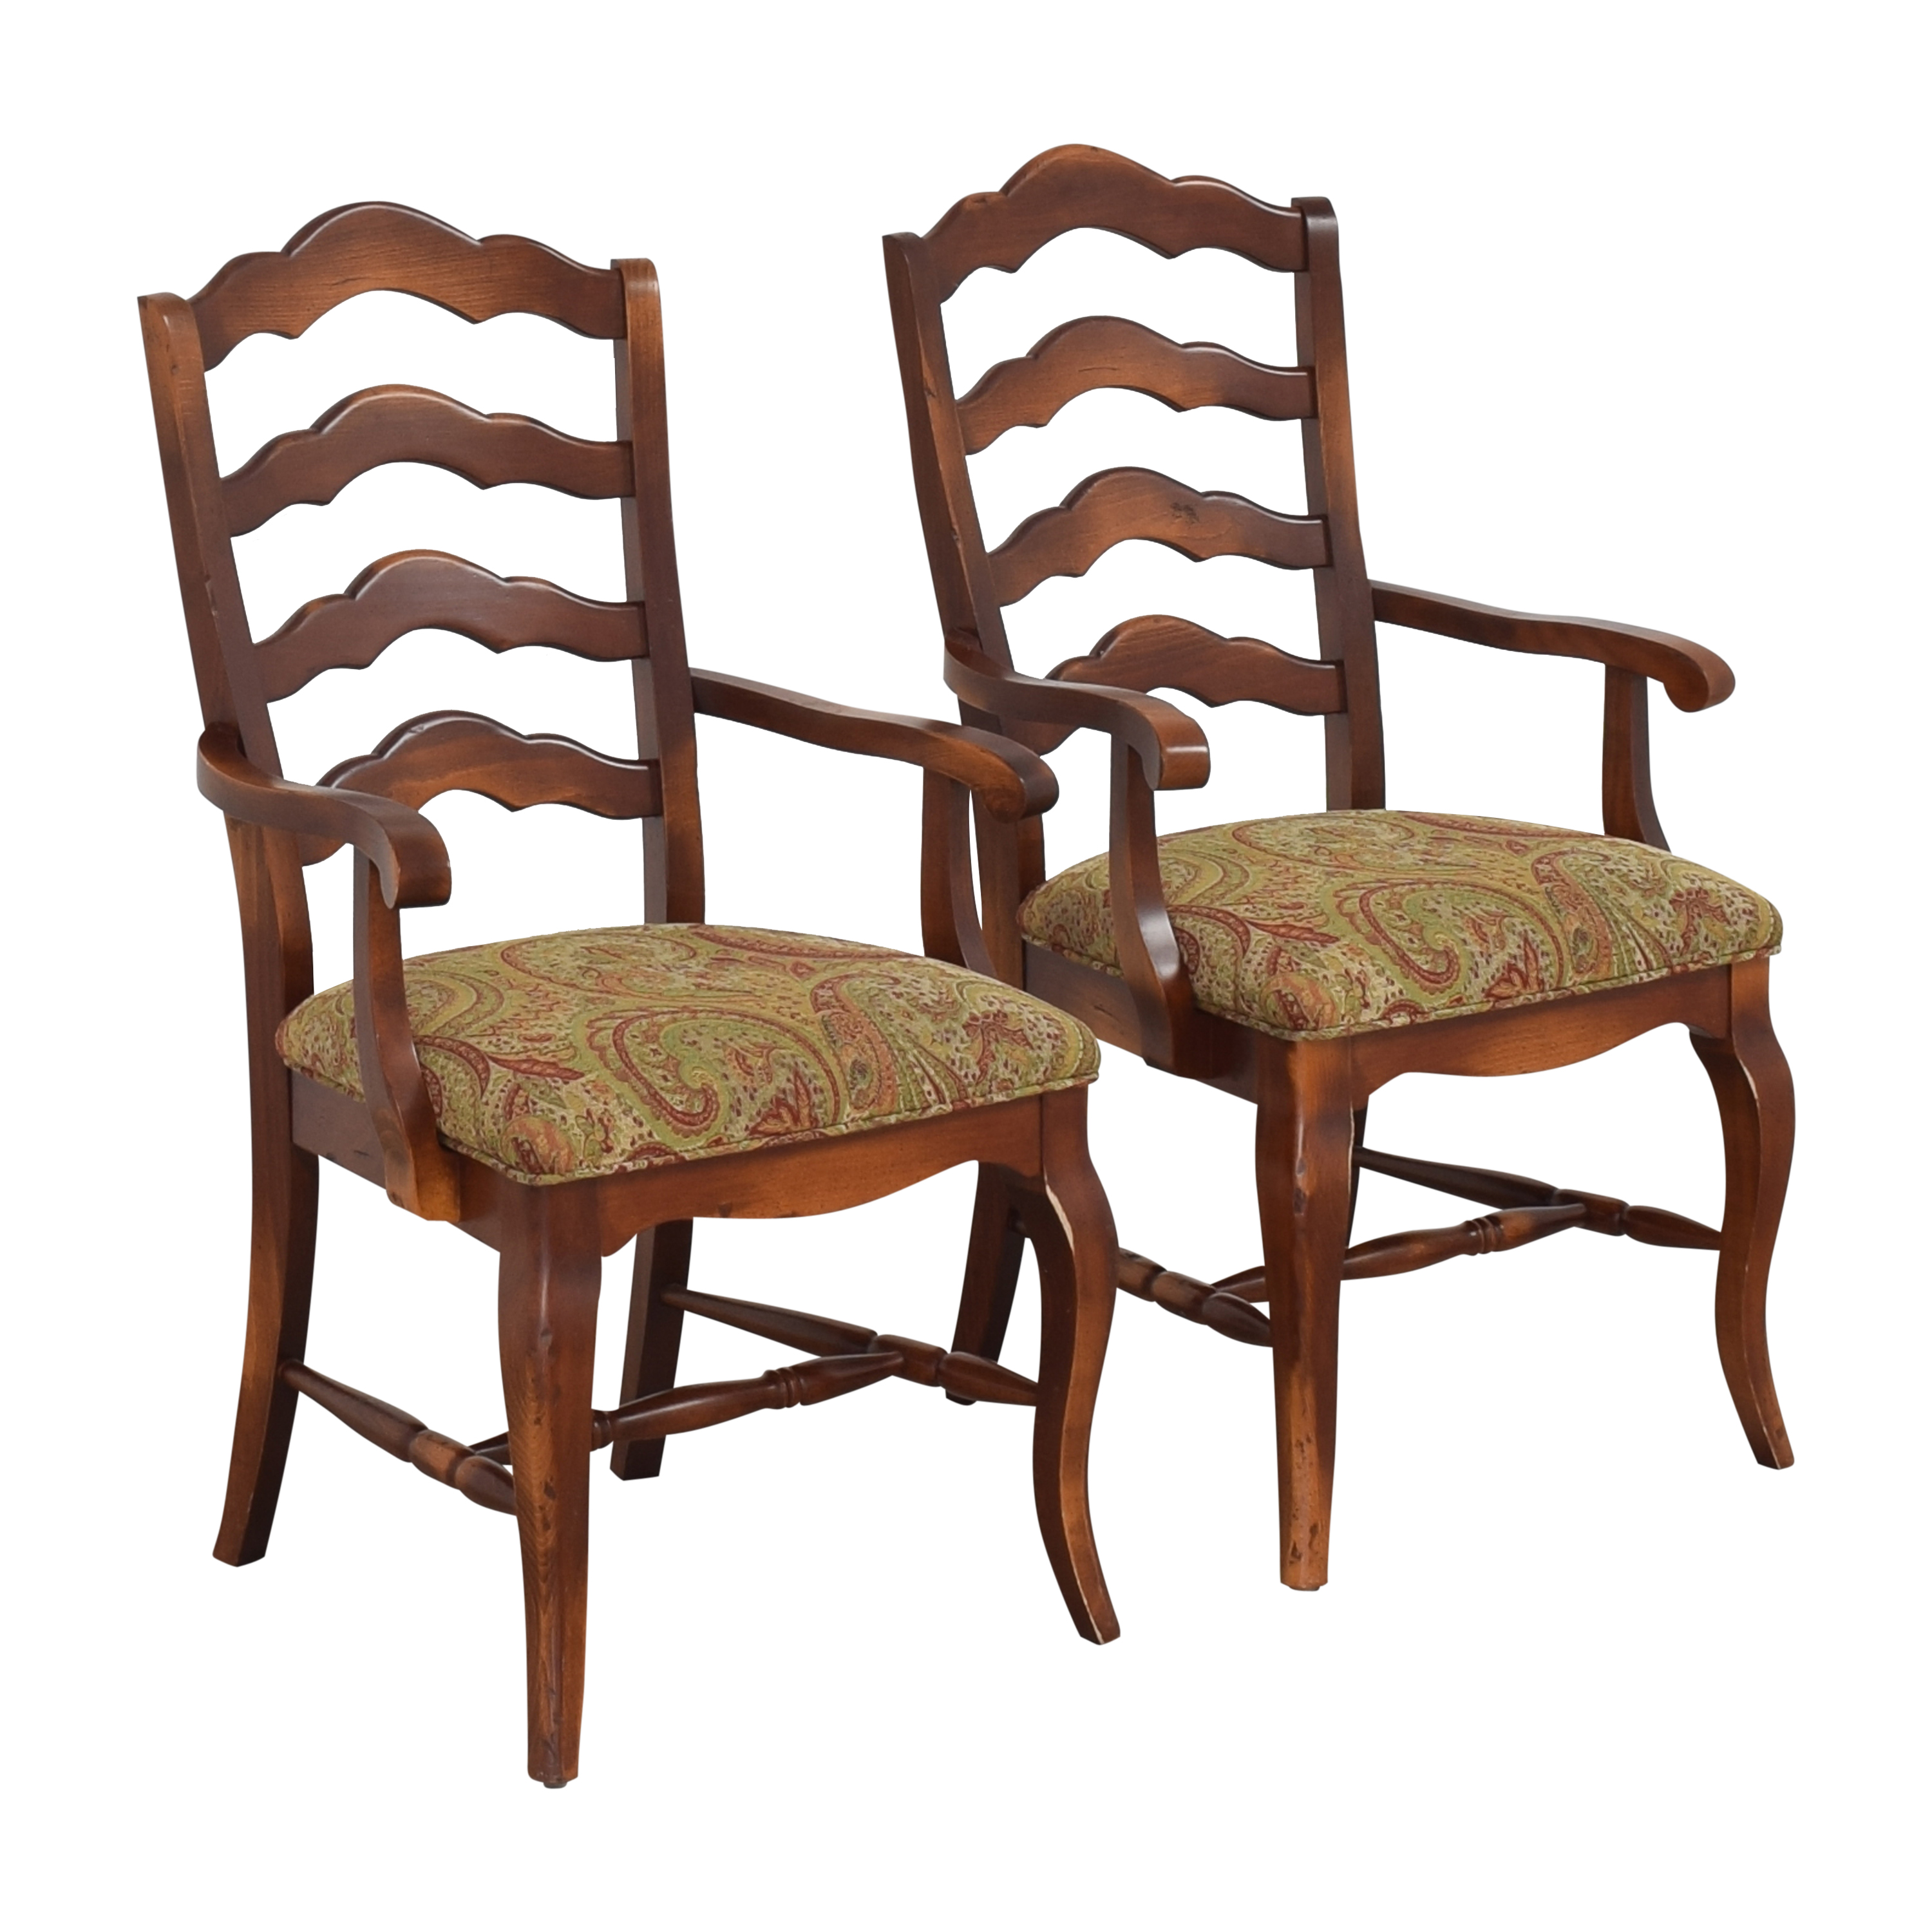 Saloom Saloom Model 35 Upholstered Dining Arm Chairs used